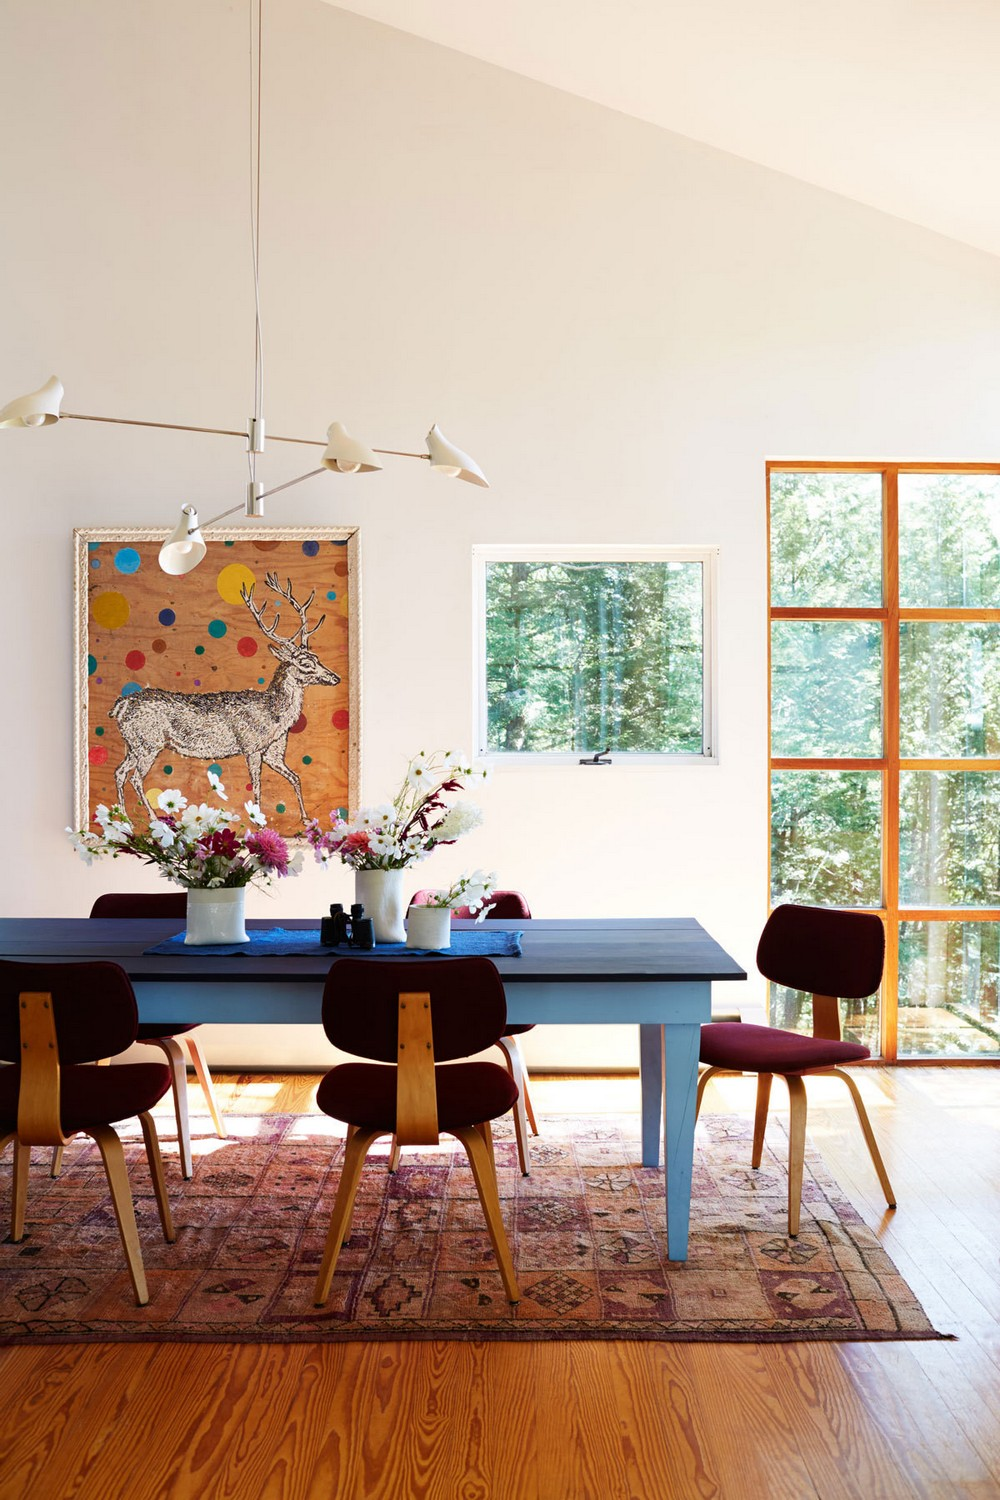 top interior designers Shop The Look: Dining Room Ideas By Top Interior Designers (Part III) miles redd Lonny